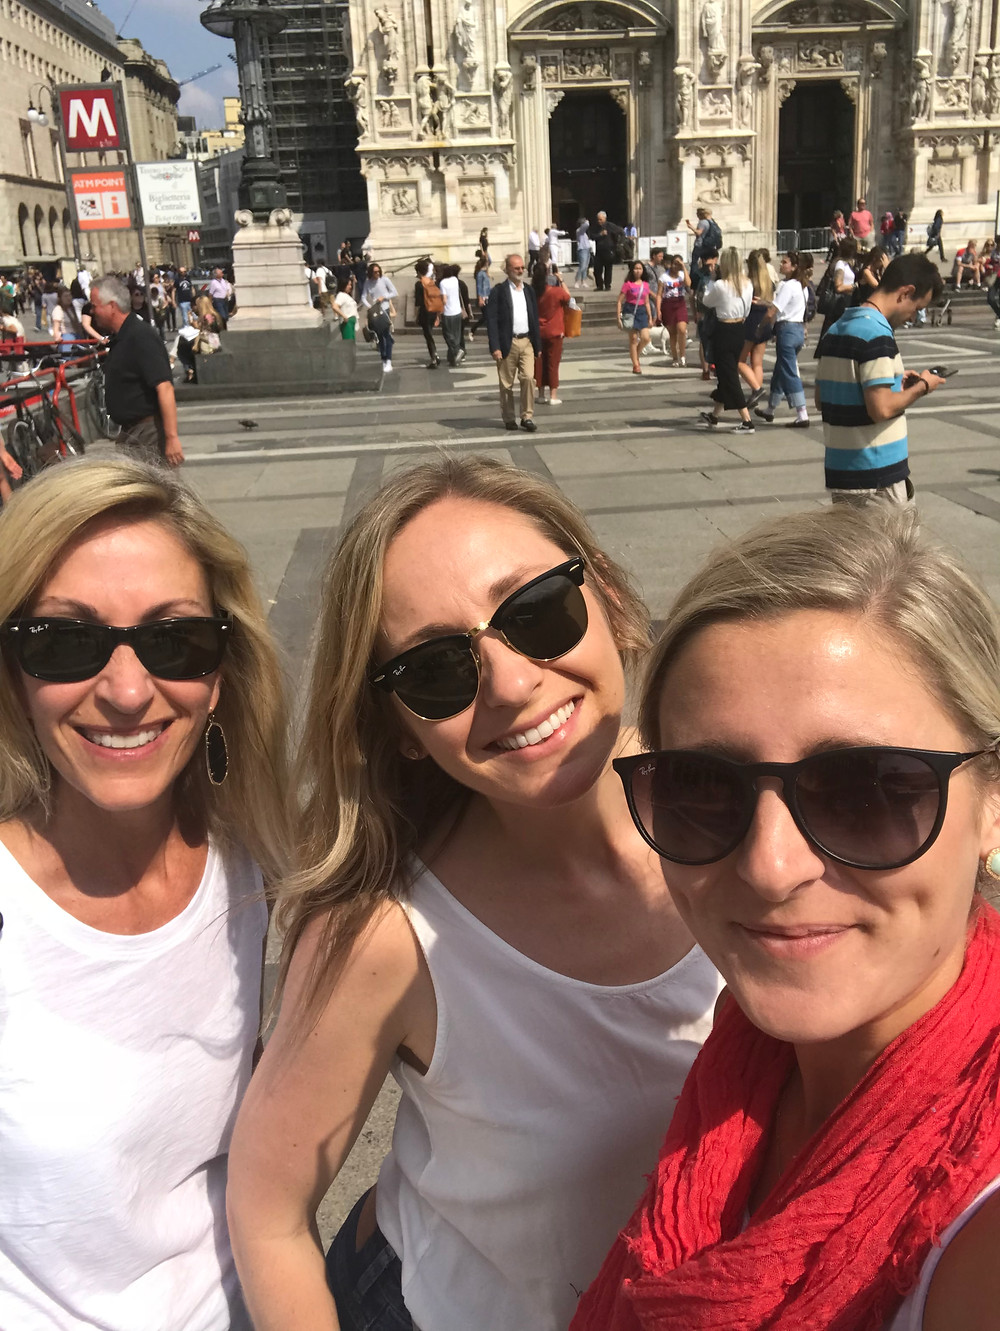 Mother and two adult daughters posing outside the Duomo in Milan